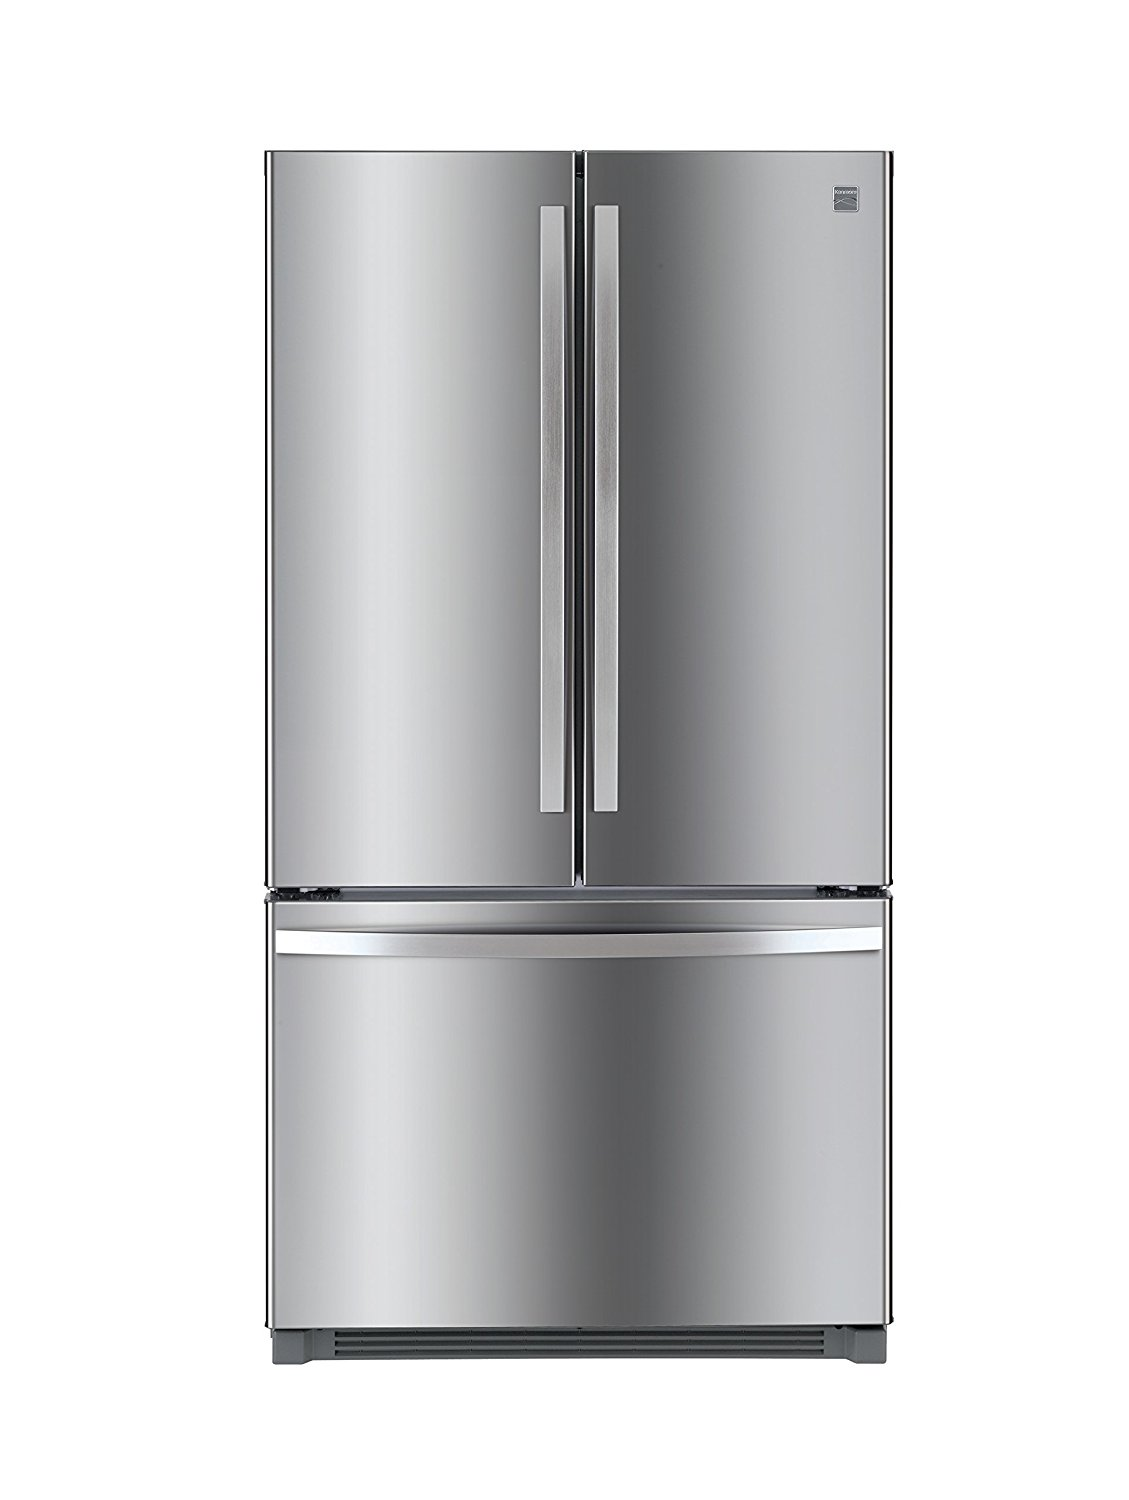 Kenmore 73025 26.1 cu. ft. Non-Dispense French Door Refrigerator in Stainless Steel with Active Finish, includes delivery and hookup (Available in select cities only)